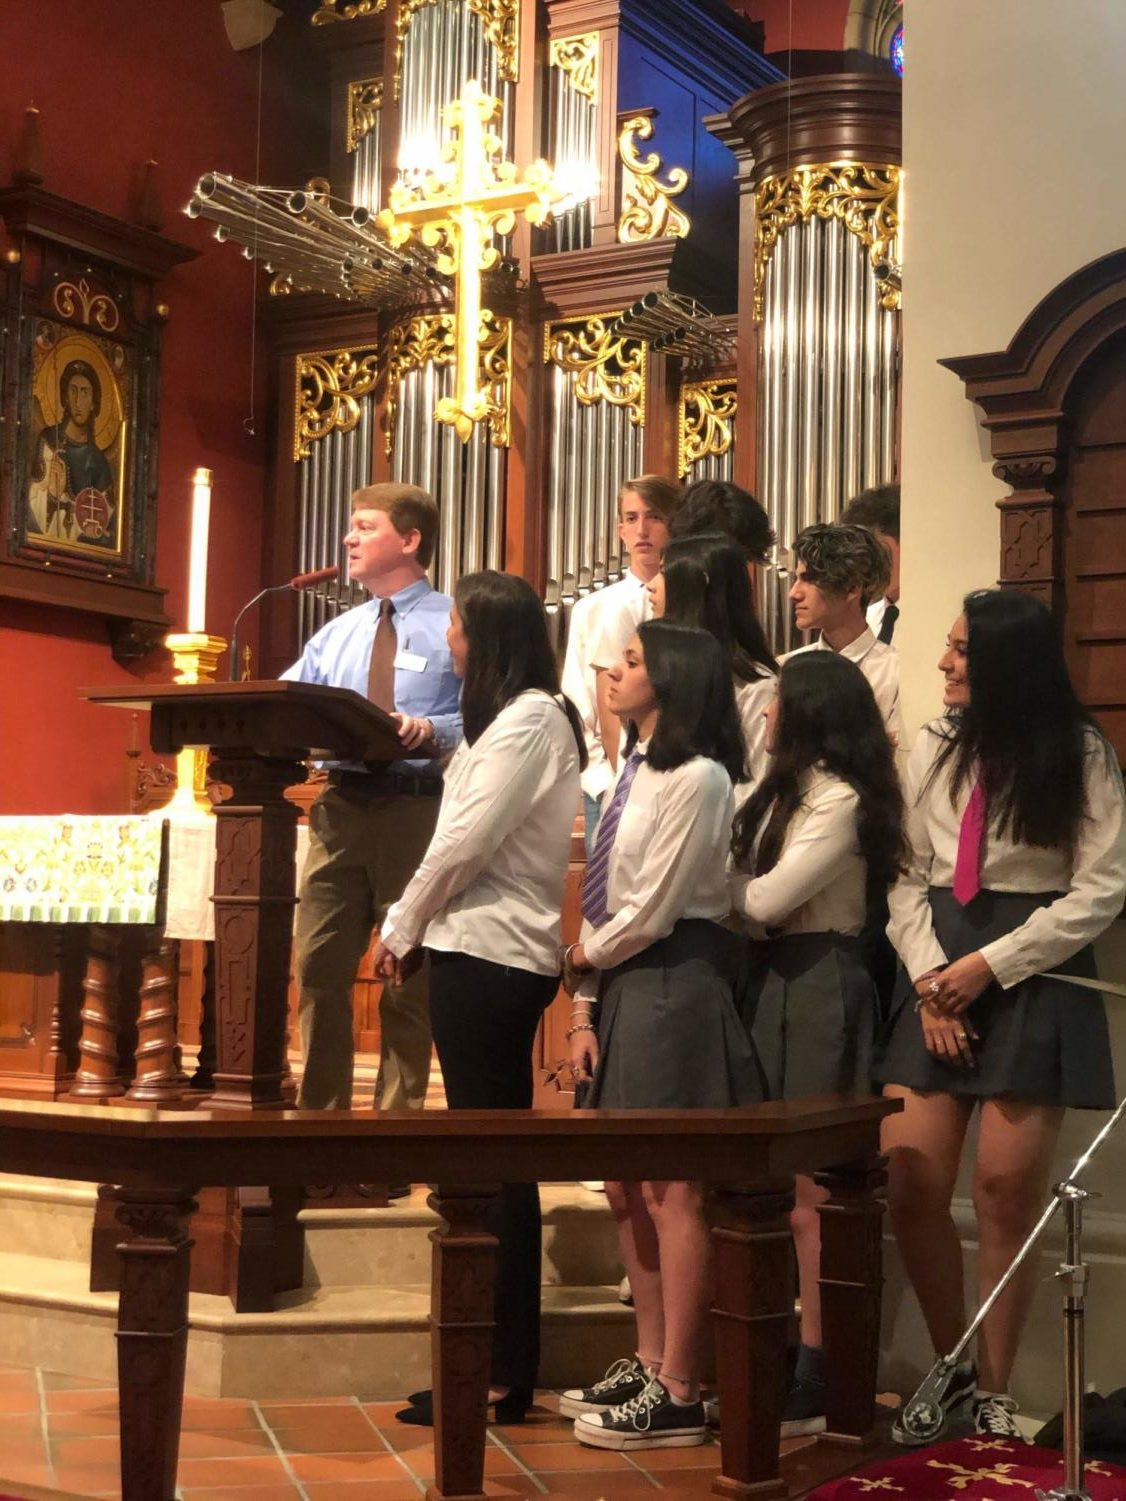 +Mr.+Whelan+introduces+the+Argentinian+students+as+they+give+their+performance+in+chapel